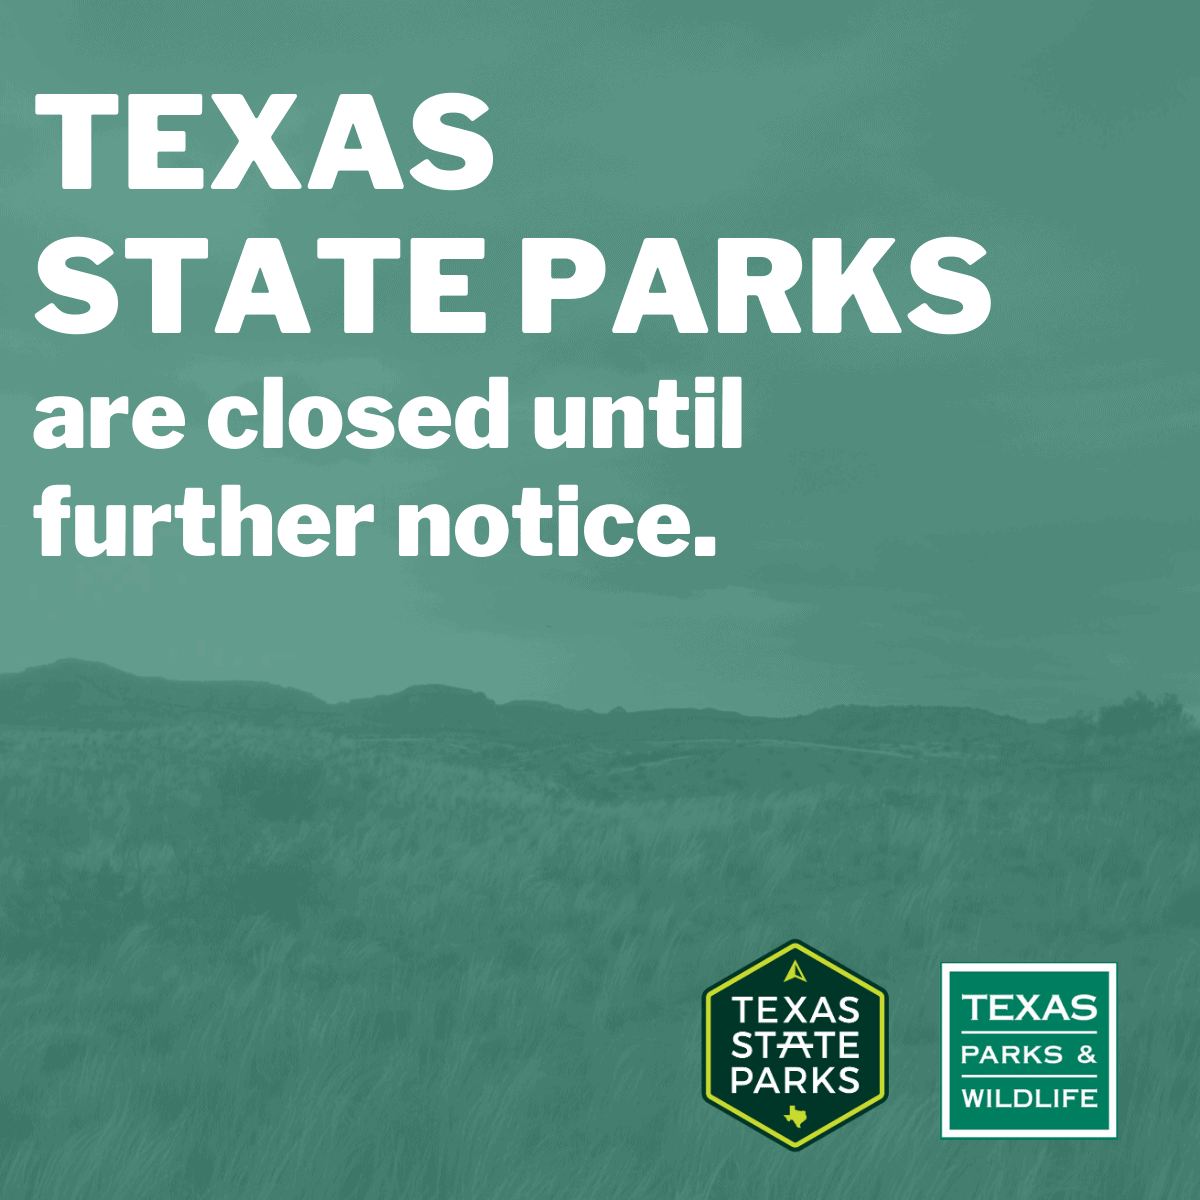 Texas state parks closed